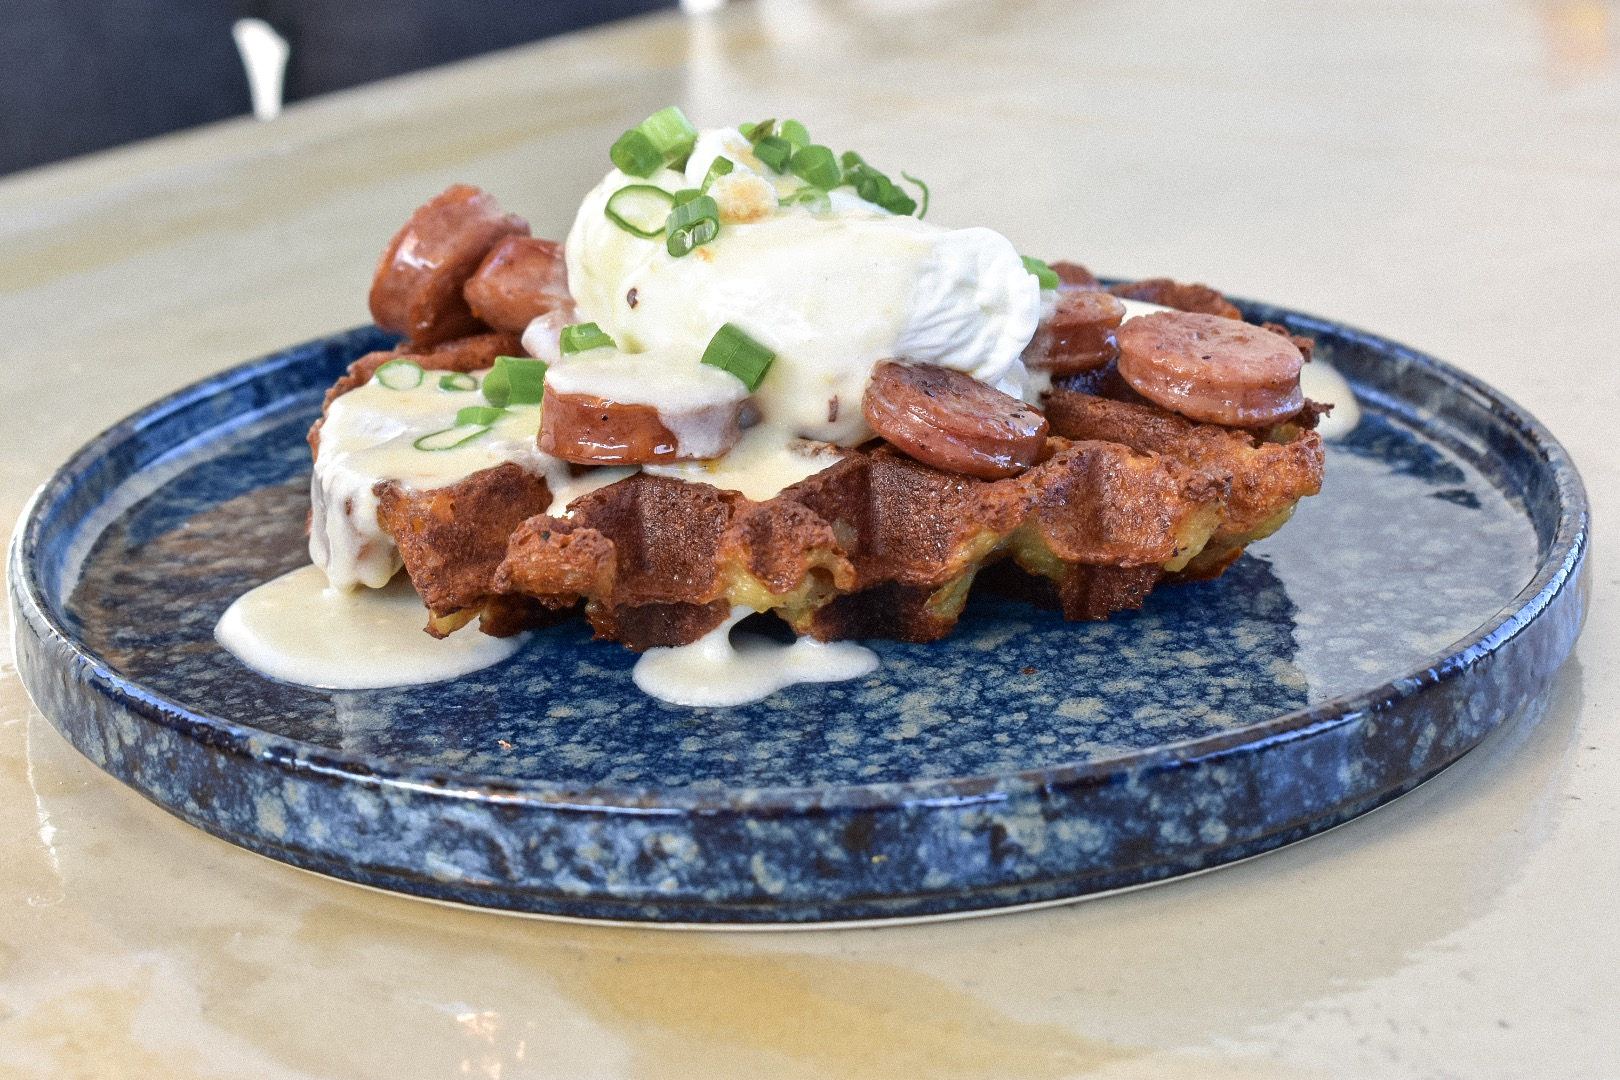 potato waffle with sausage and gravy north park breakfast company bloody mayr obsessed.jpg